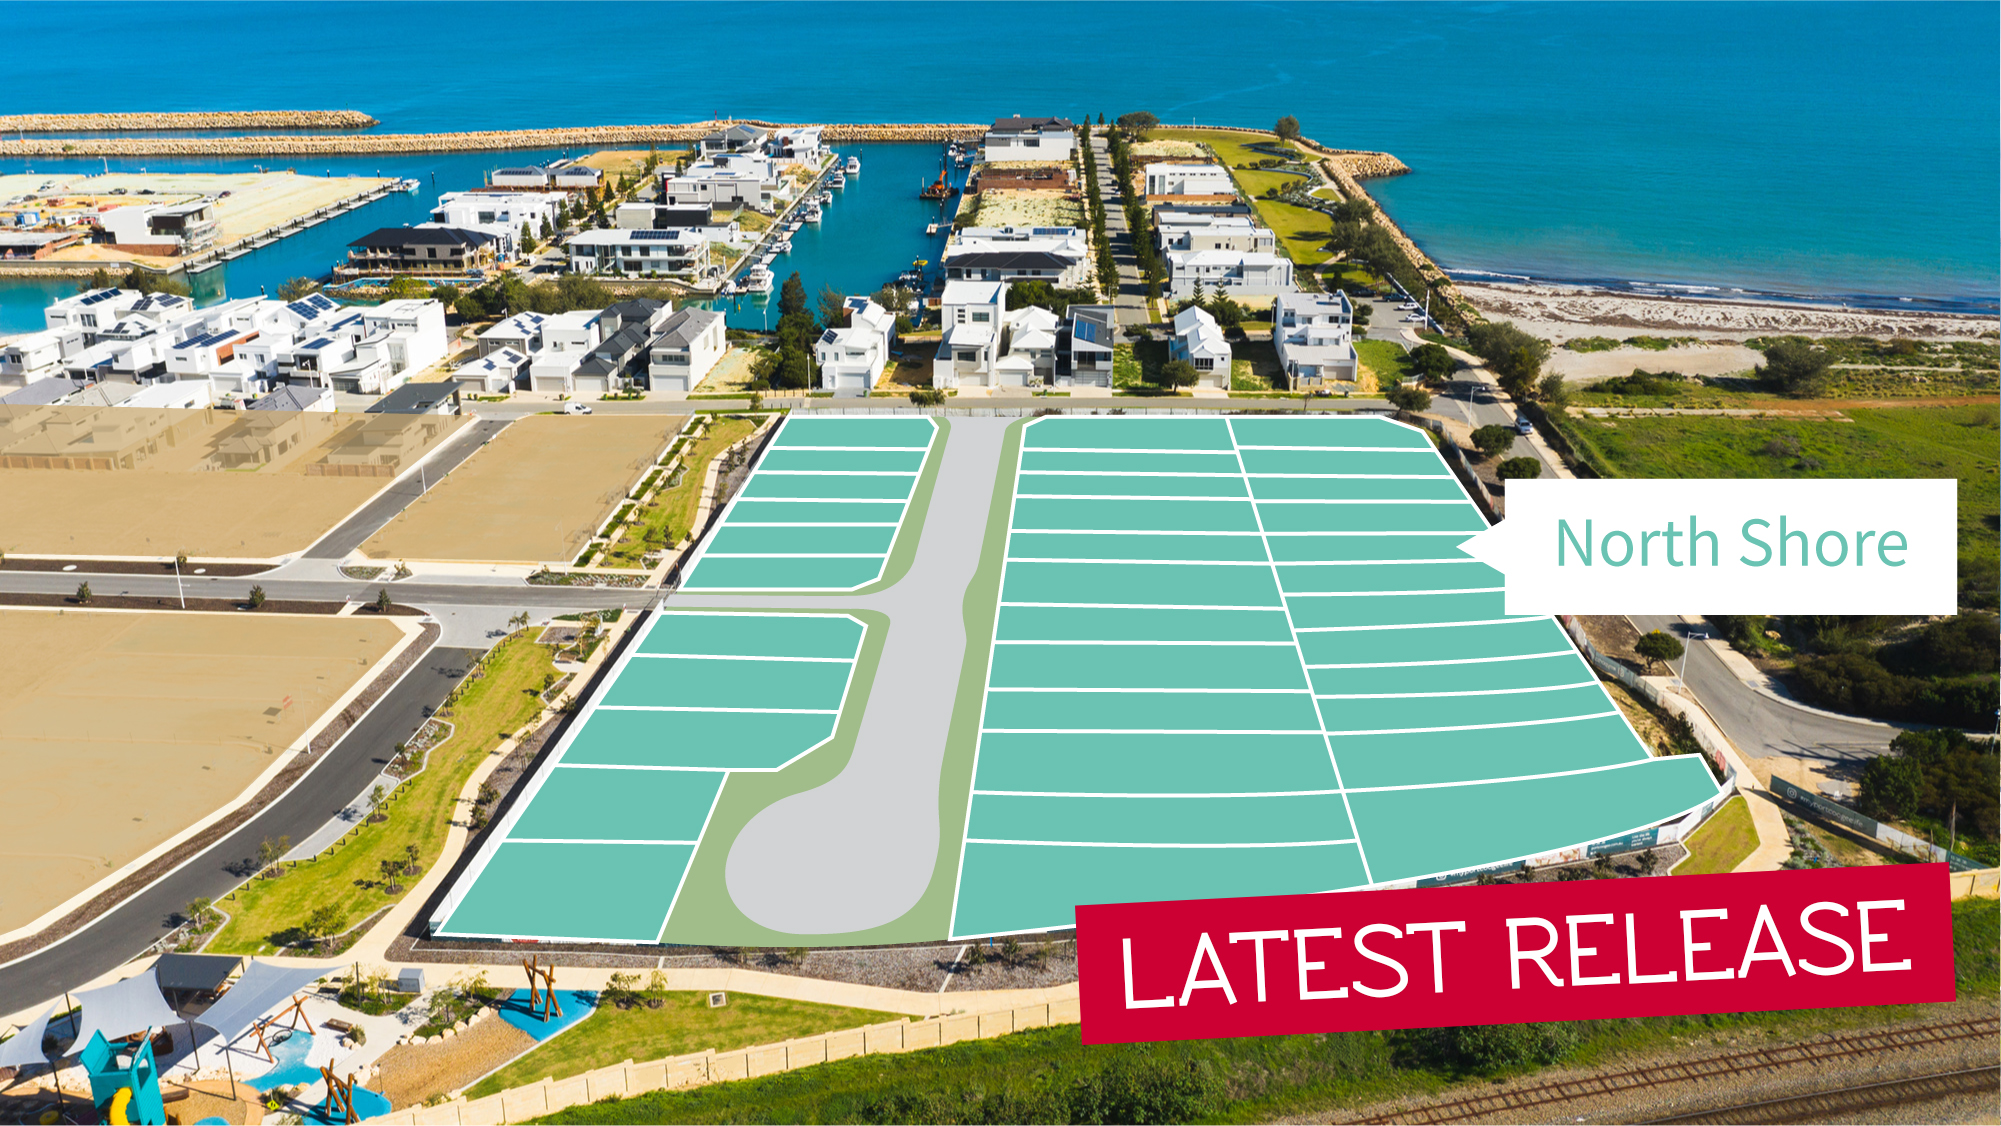 North Shore Land Release - Port Coogee